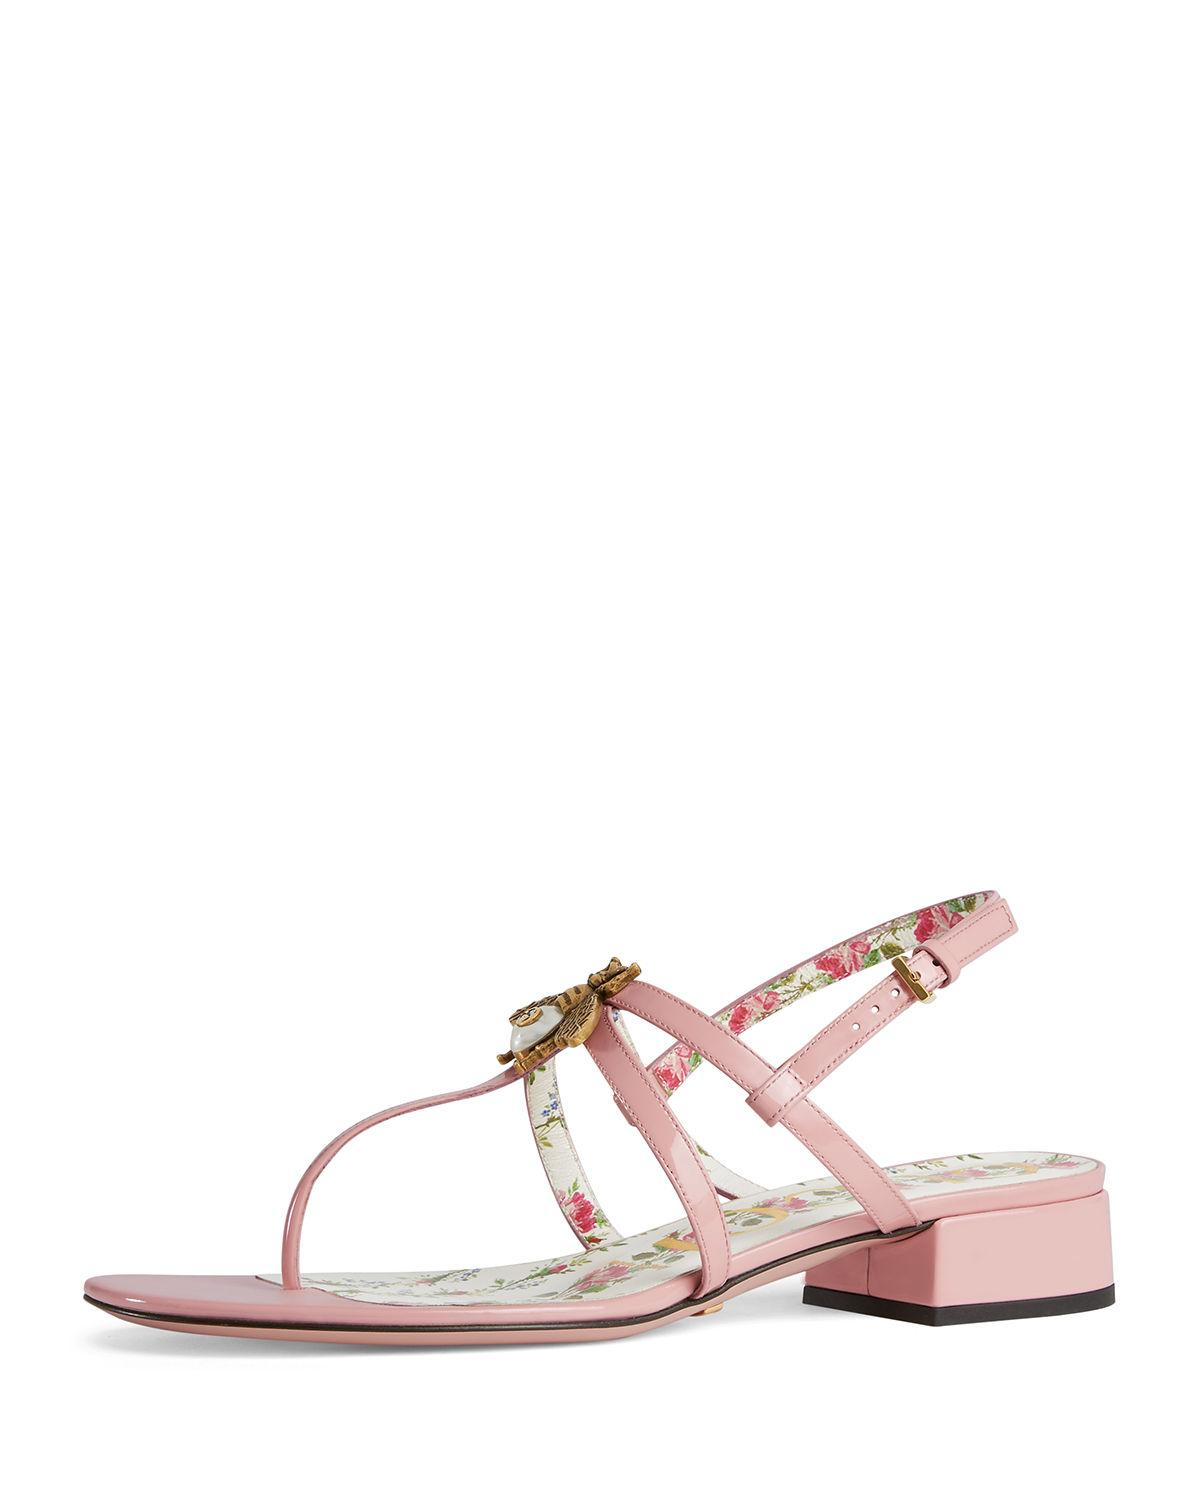 856214b4cbdf Gucci s light pink patent leather thong sandals are styled with a low-cut  block heel and embellished with an antiqued brasstone metal and glass ...